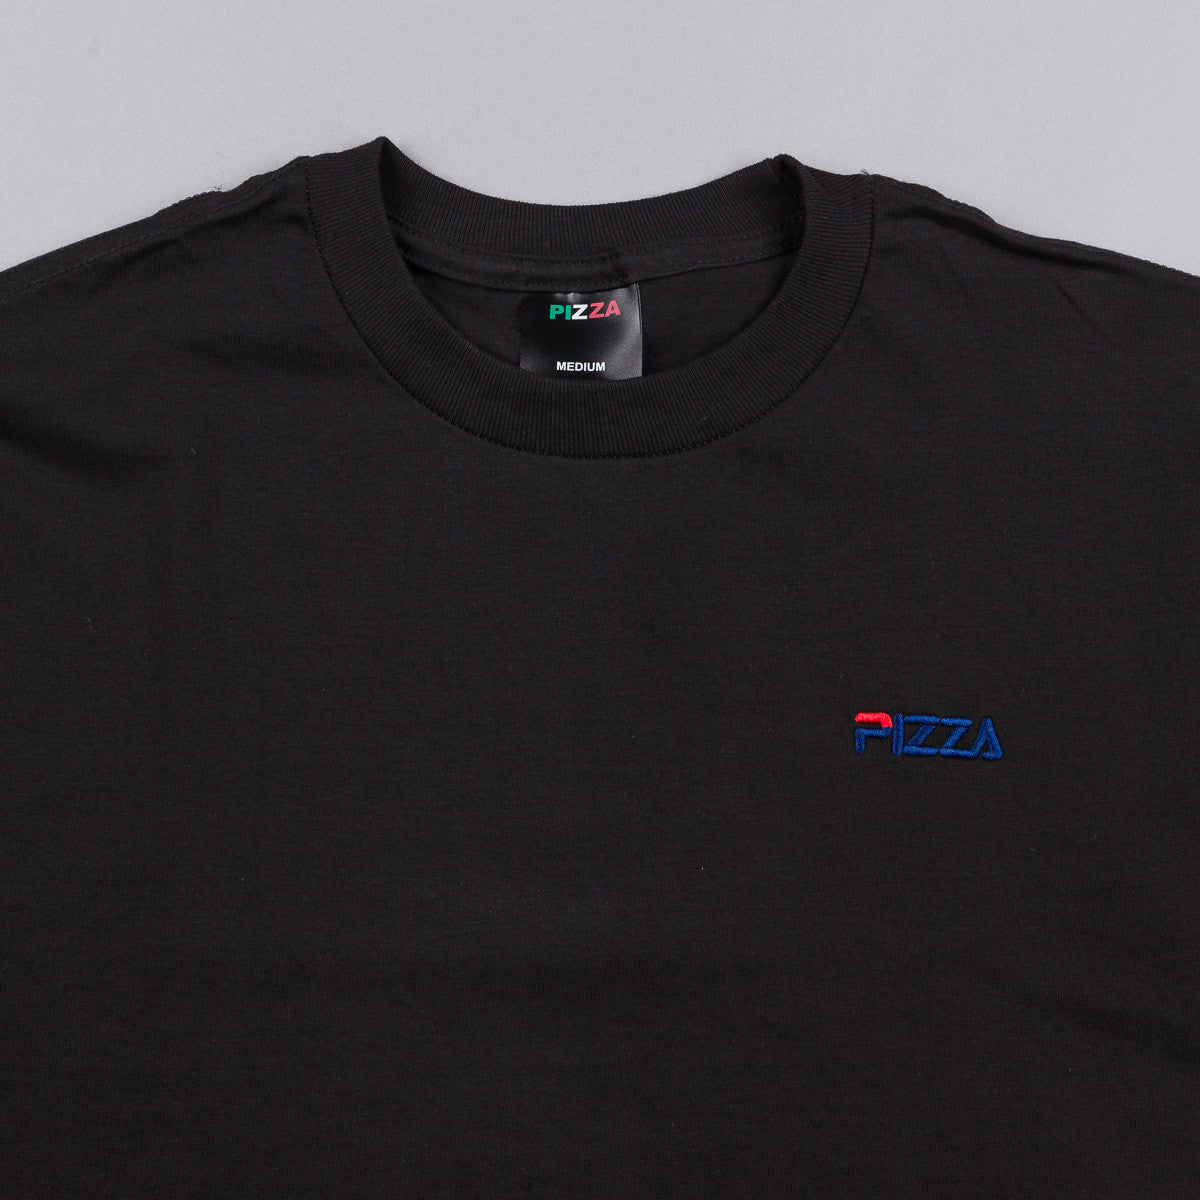 Pizza Skateboards Fizza T-Shirt - Black